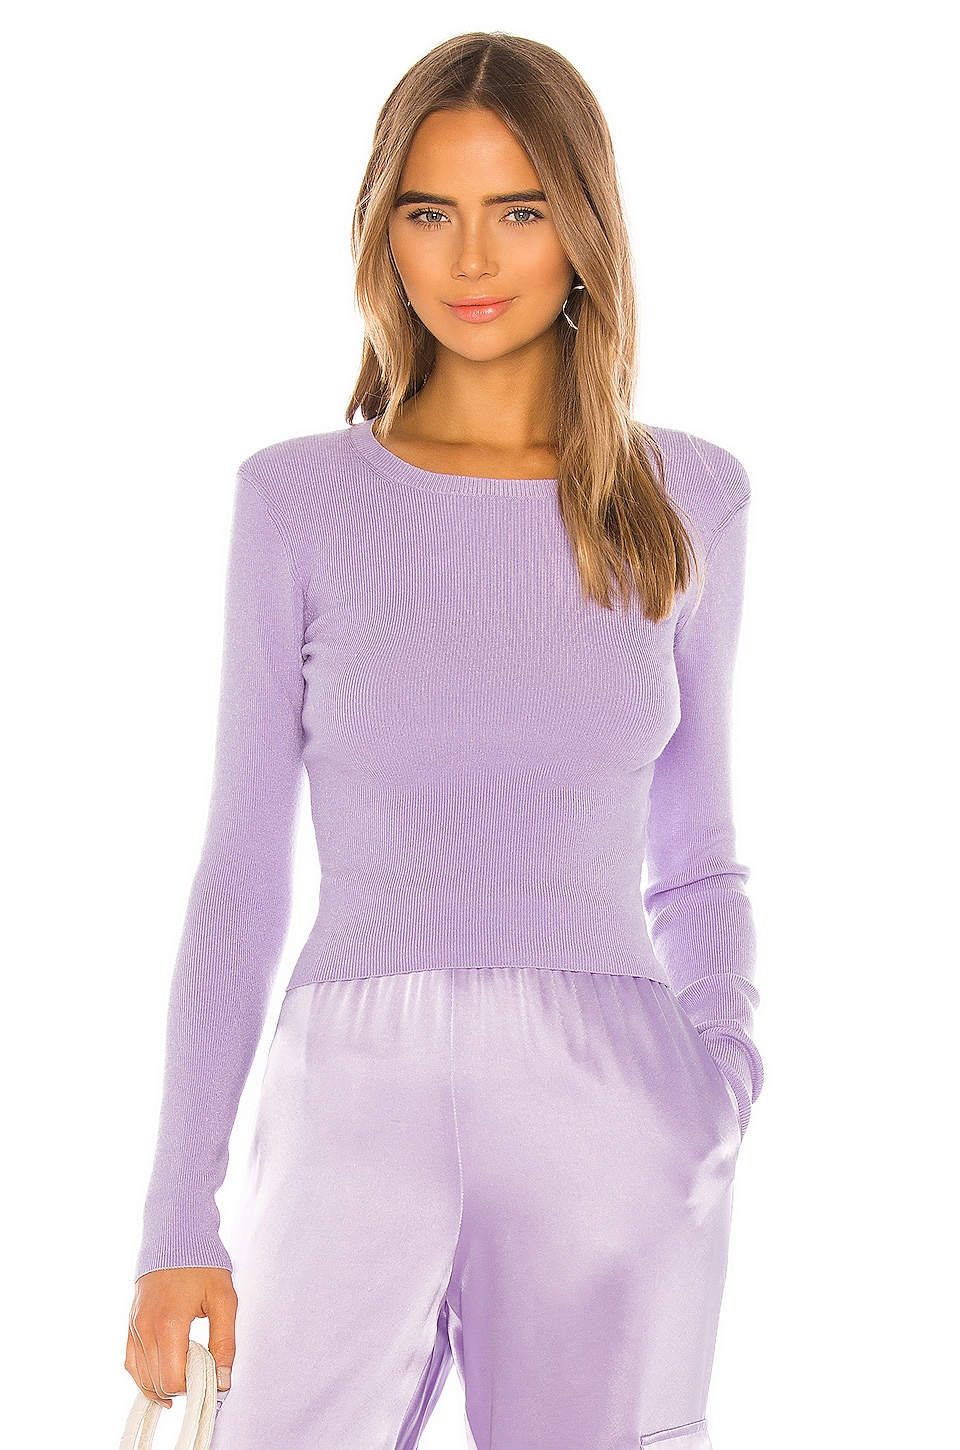 Alice + Olivia Ciara Long Sleeve Cropped Pullover in Lavender